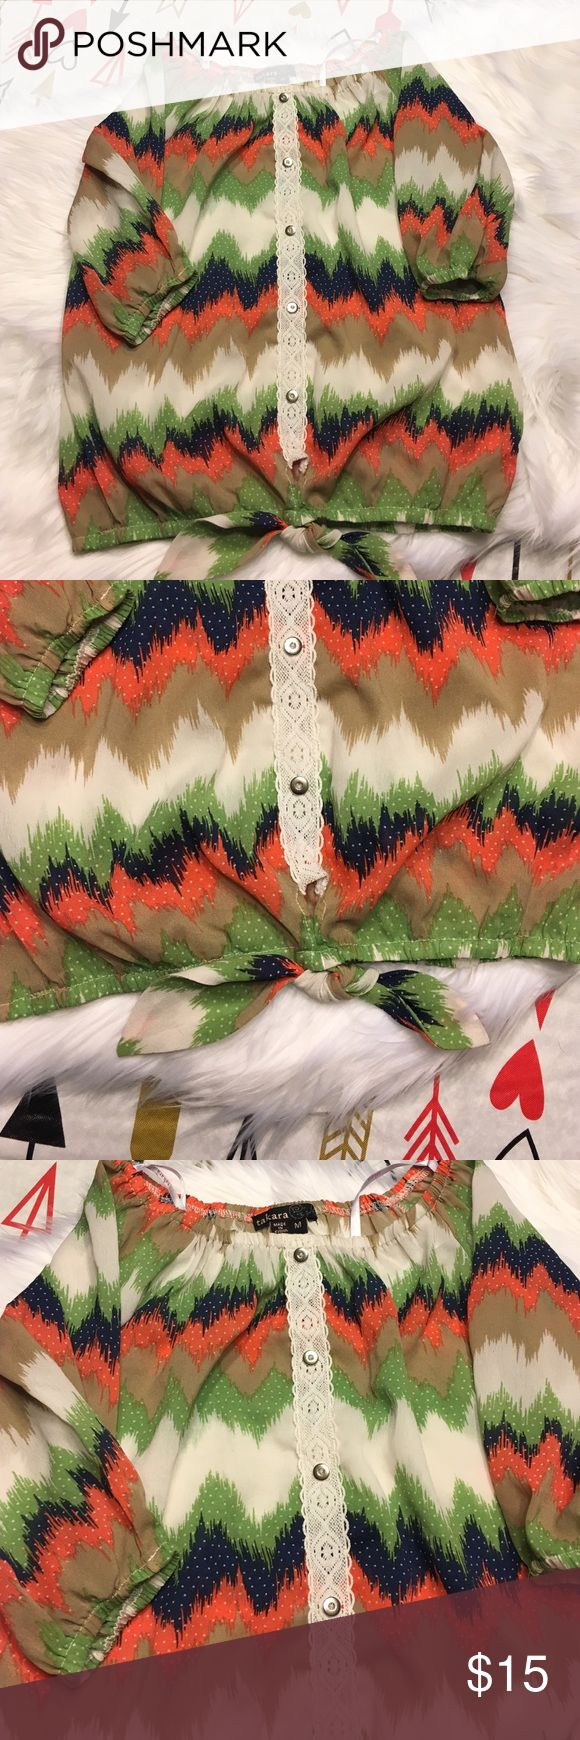 Little girl Chevron shirt size medium Very cute salmon navy blue green beige little girl shirt size medium in  a Chevron print Shirts & Tops Blouses